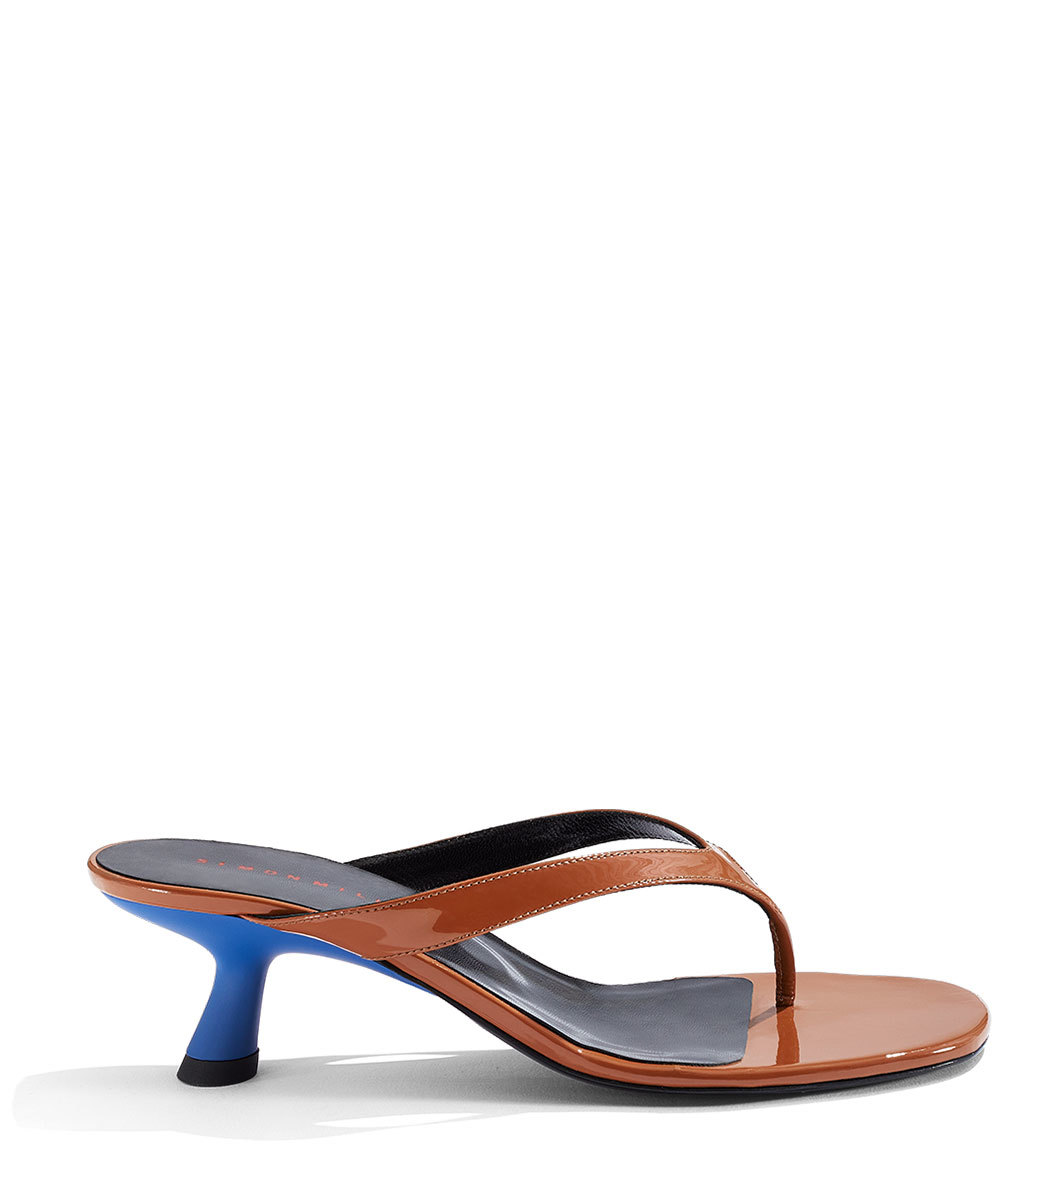 34199ad17 Simon Miller Beep Thong Sandals In Toffee